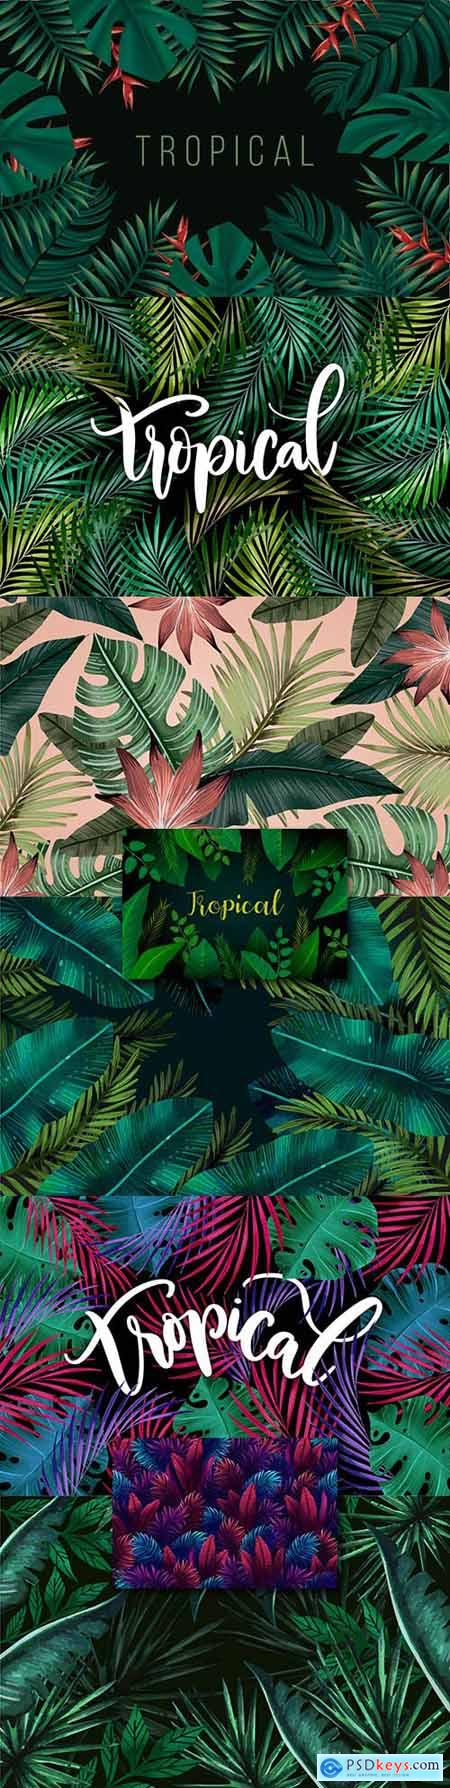 Summer tropical leaves and inscriptions decorative background